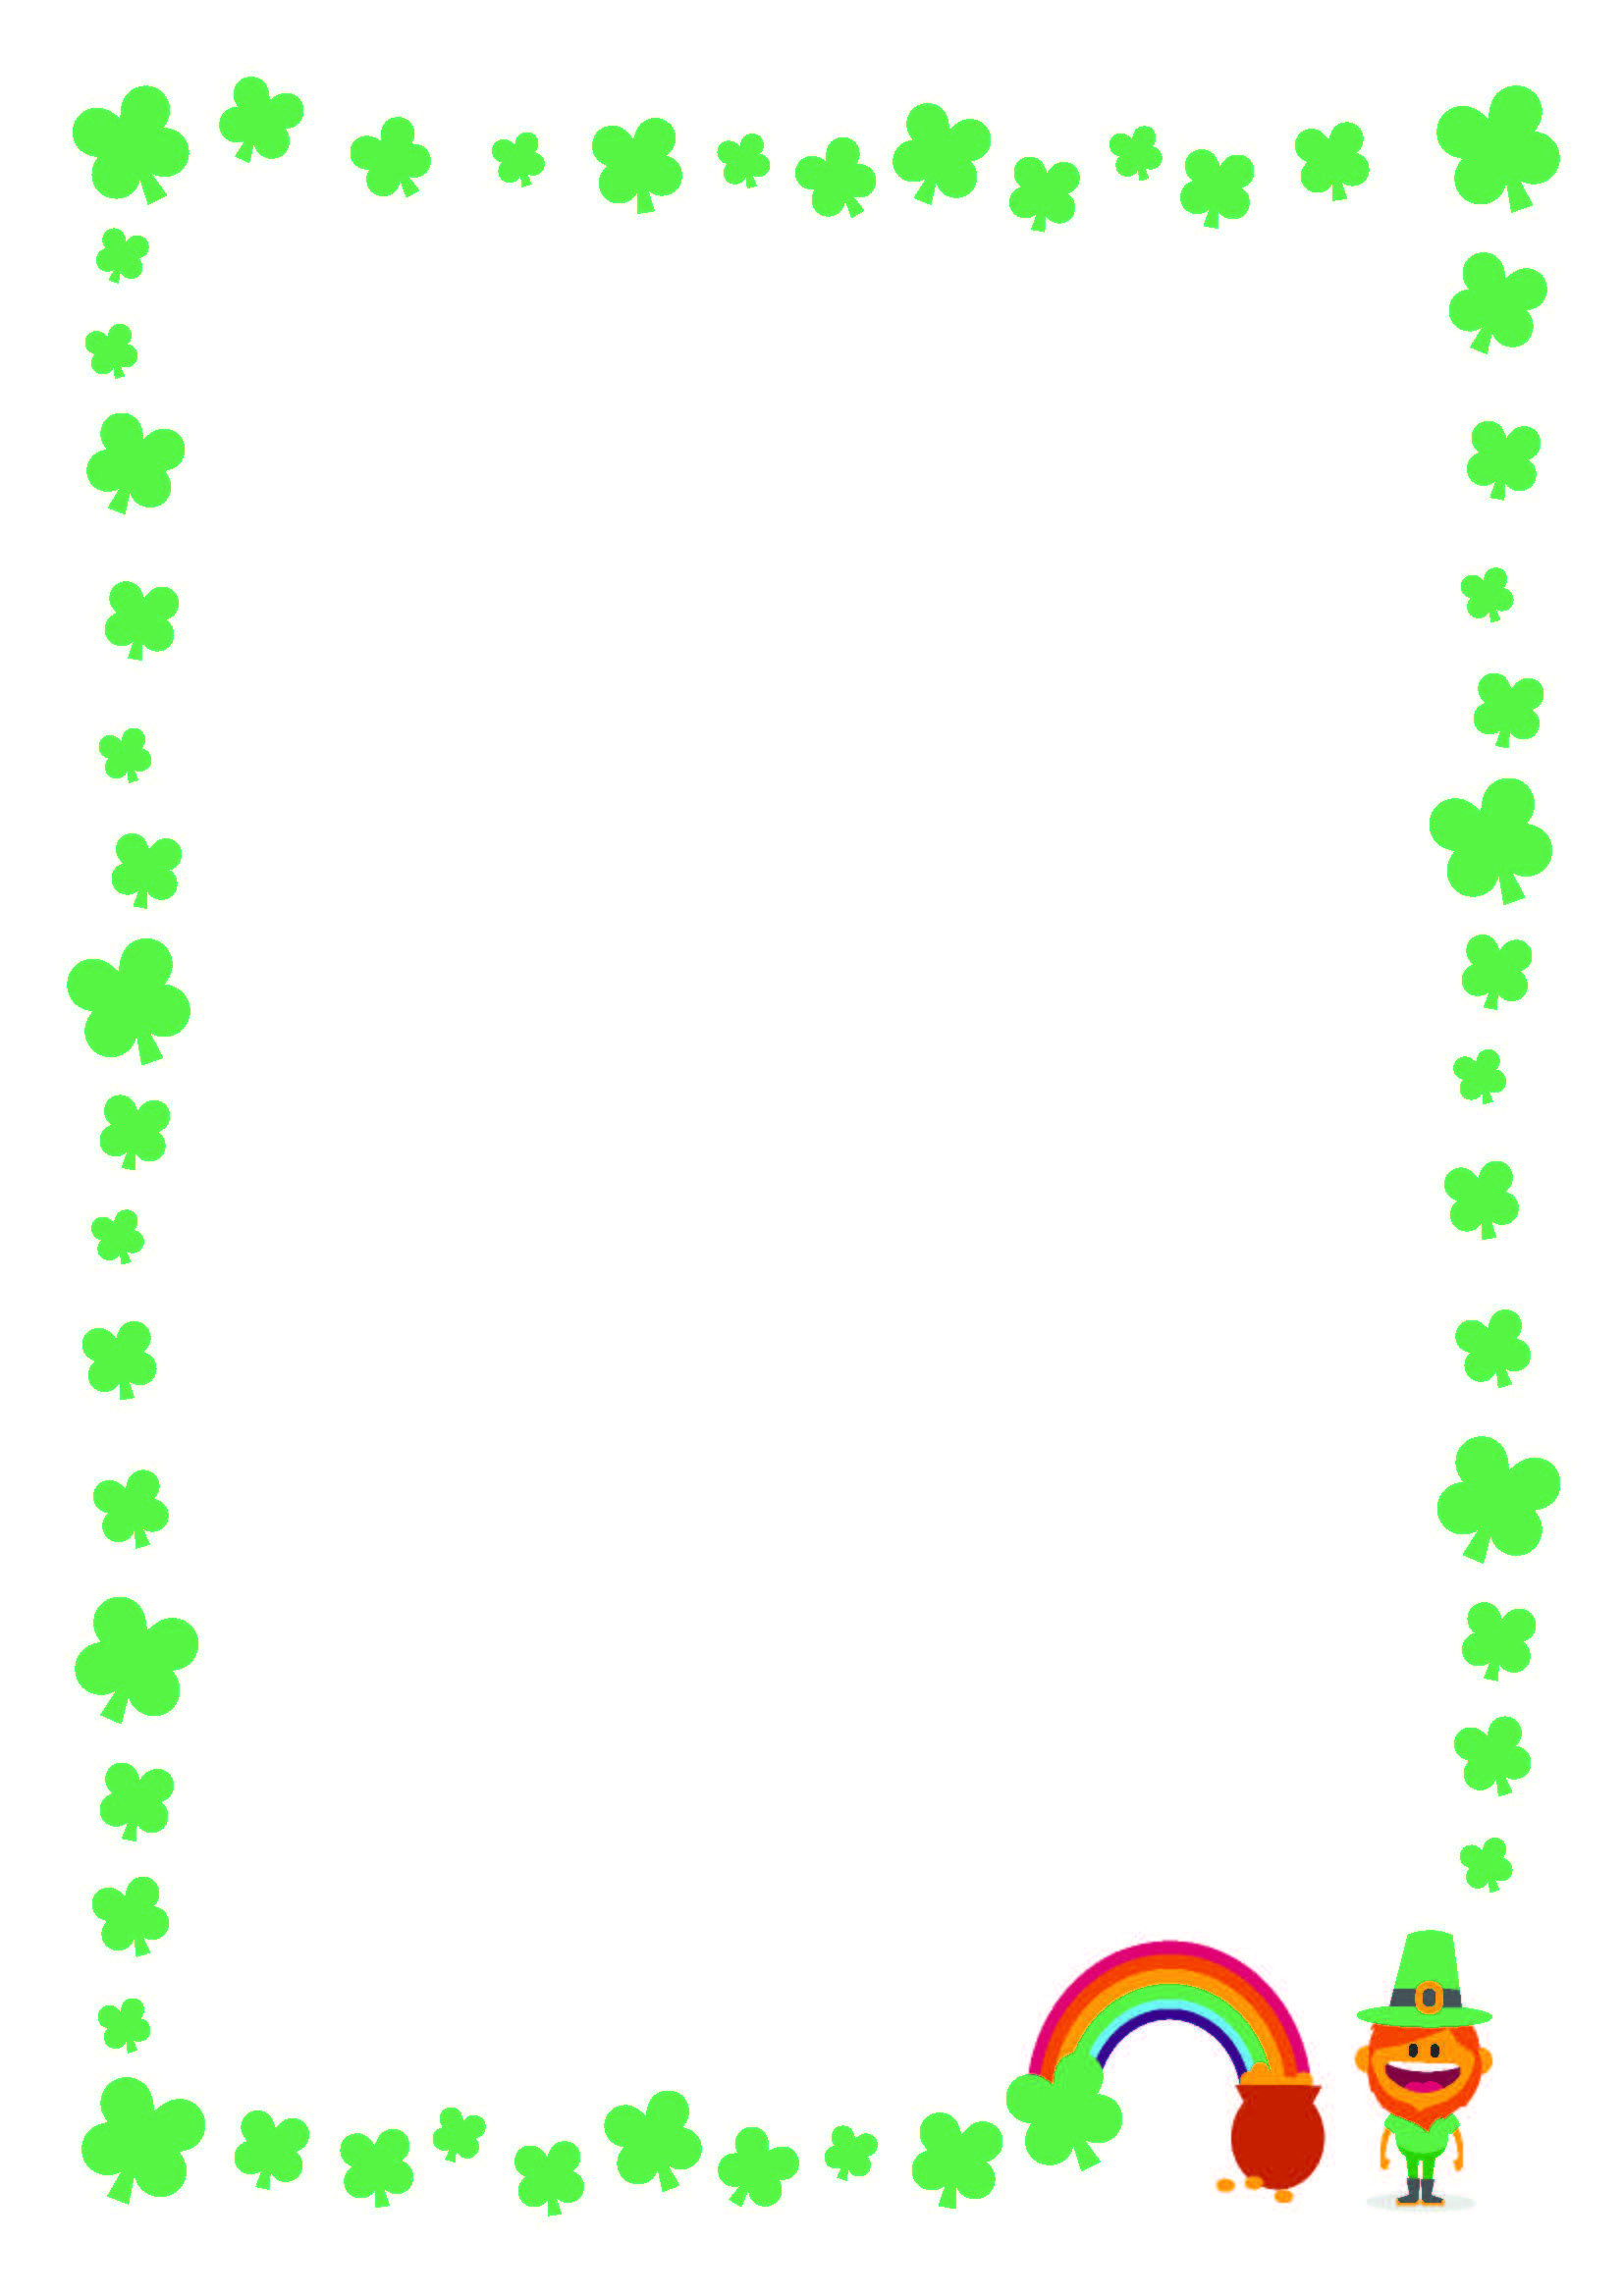 Free St. Patrick's Day Printable Writing Paper With Clover Border - Free Printable St Patricks Day Stationery